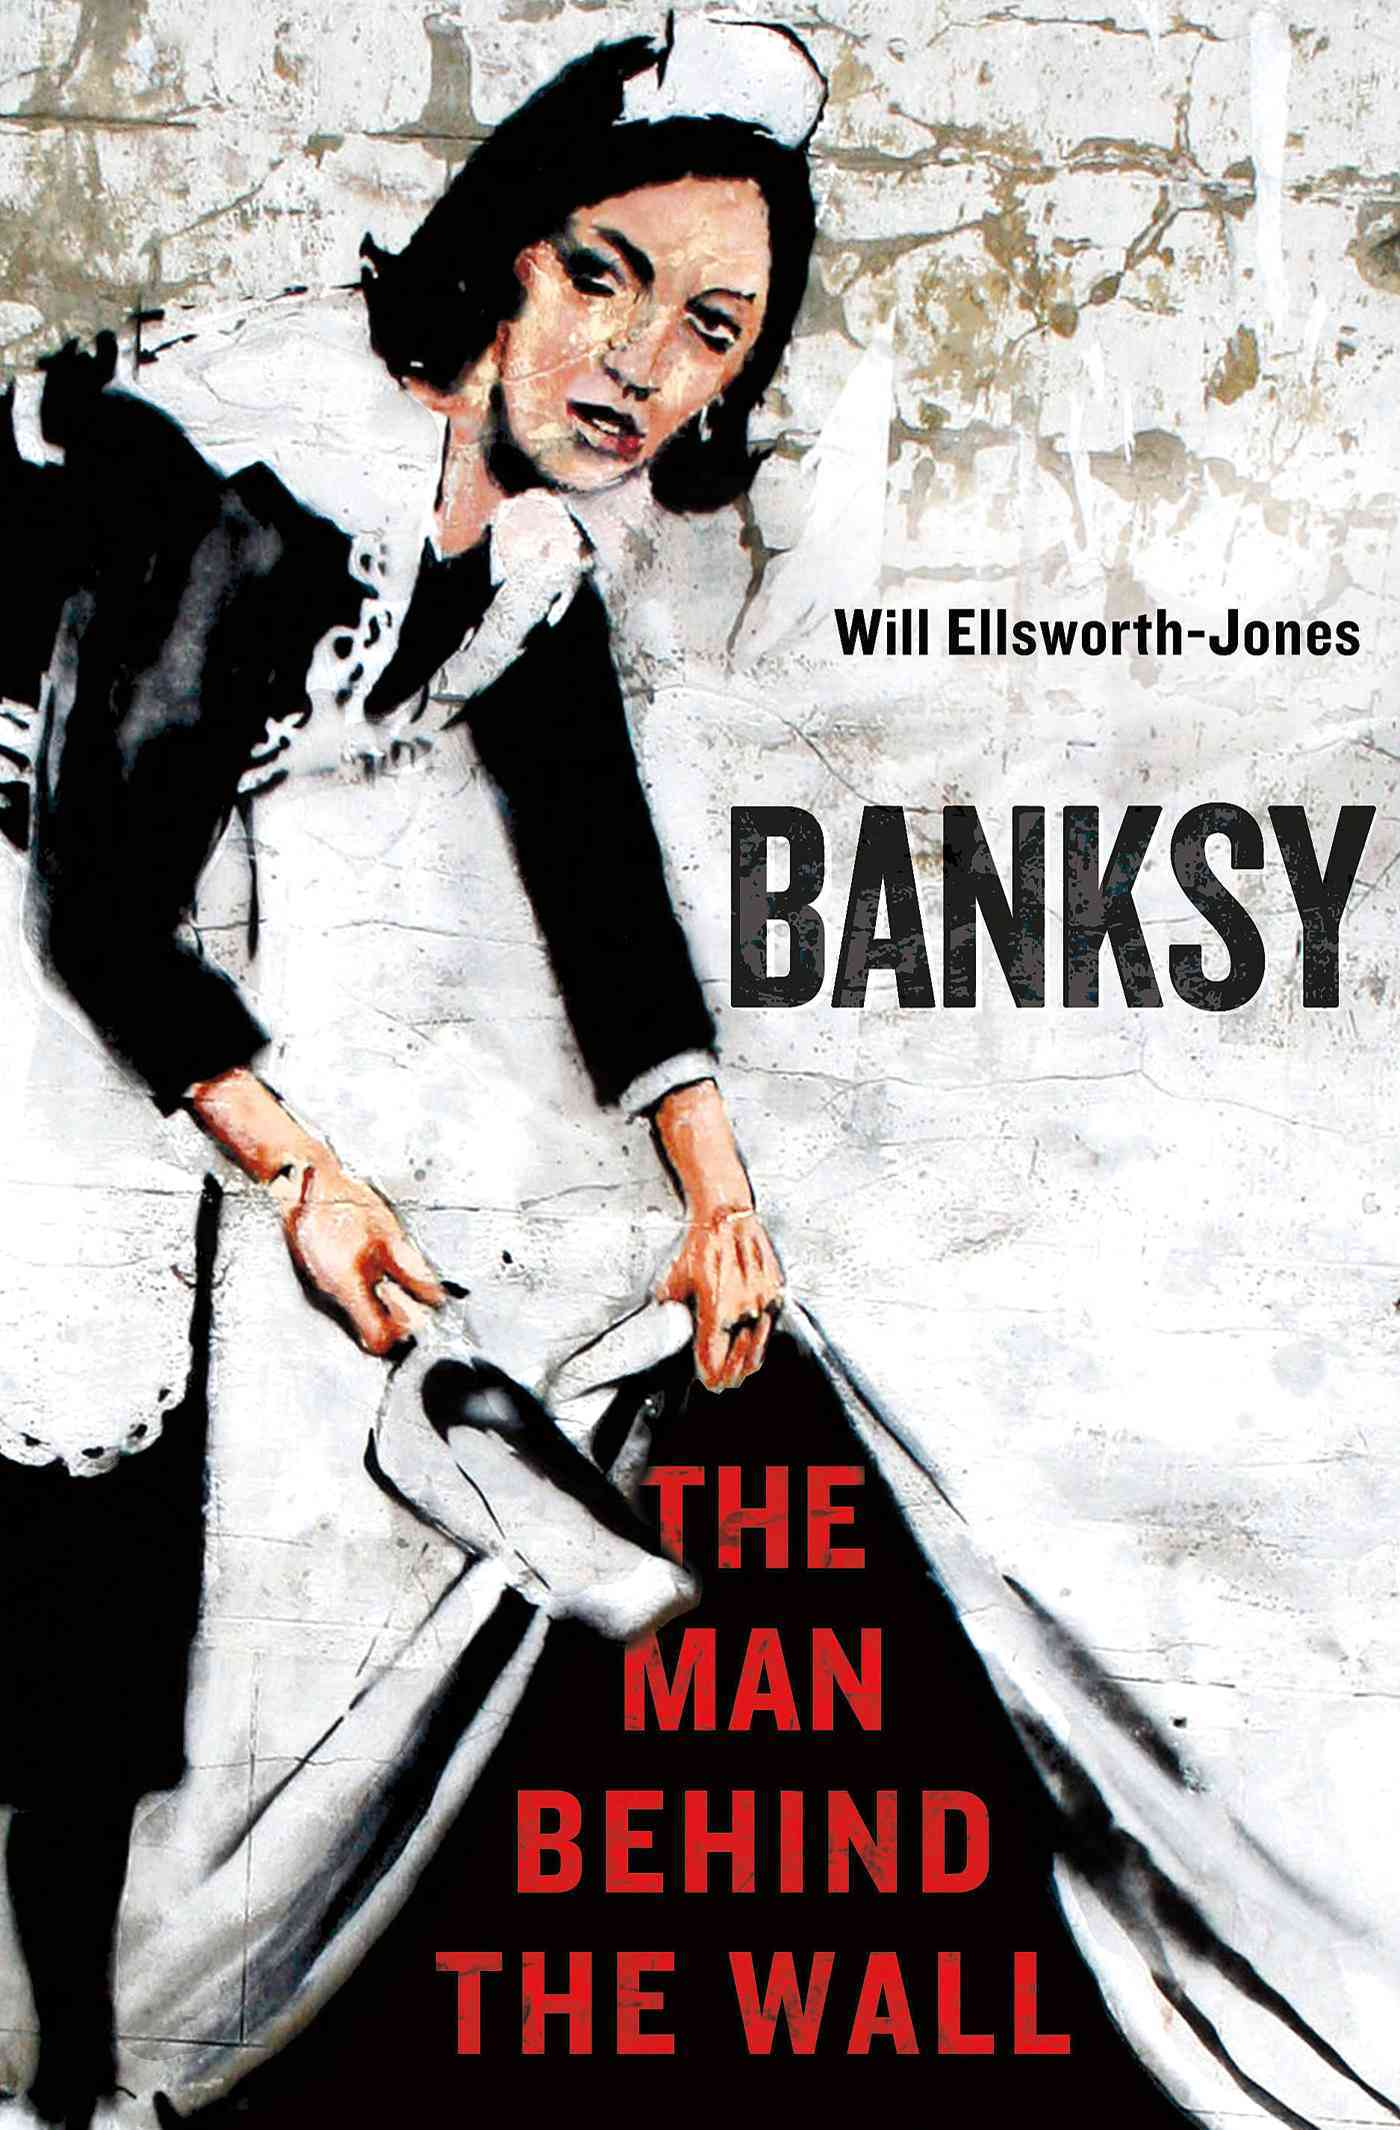 Banksy: The Man Behind the Wall (Hardcover)